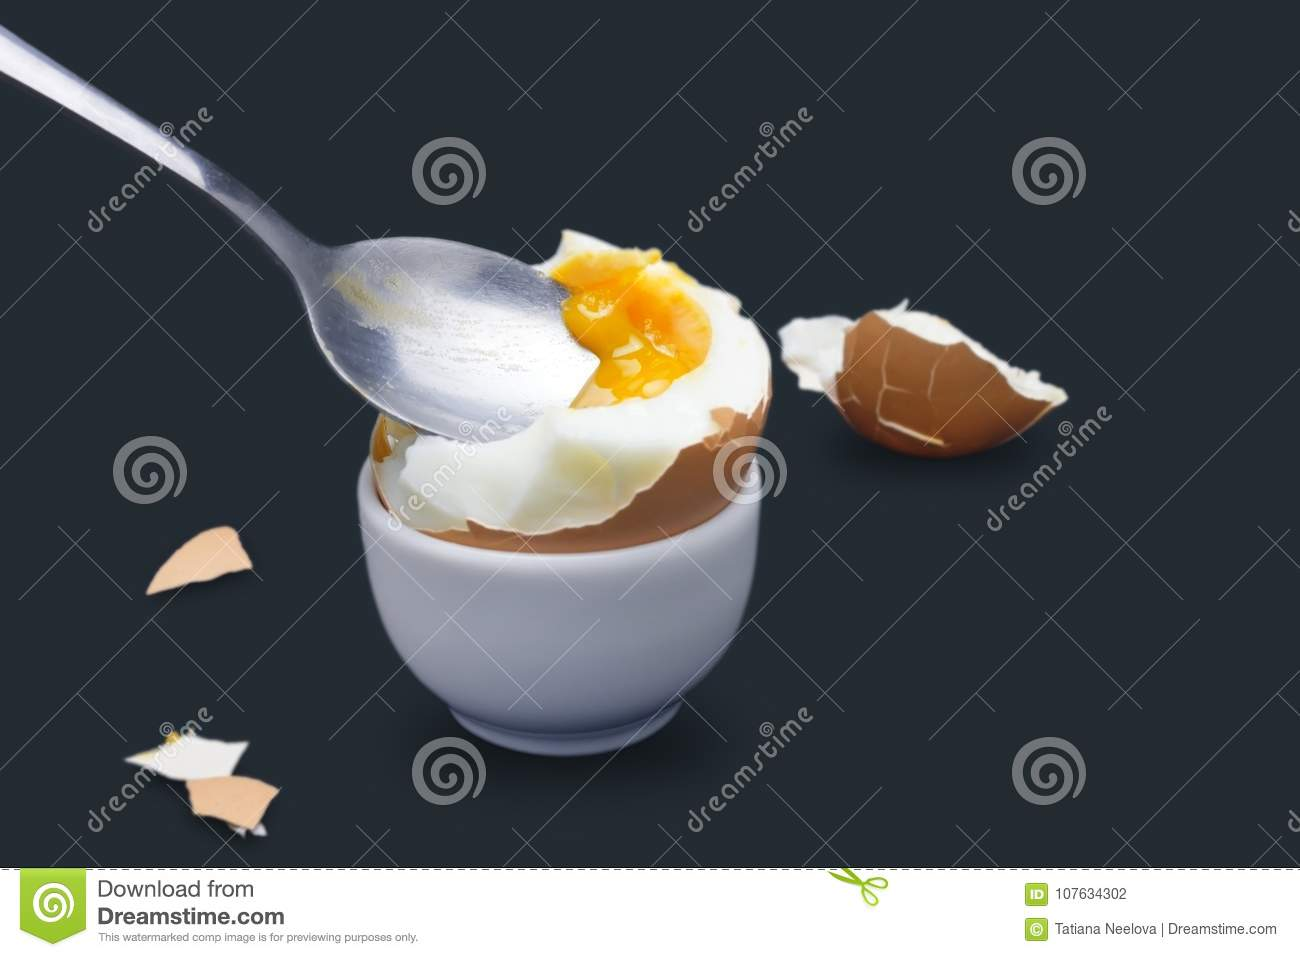 A photo of boiled smash broken hen beige egg and a spoon with yolk on dark blue. Egg`s liquid yolk photo, bright contras